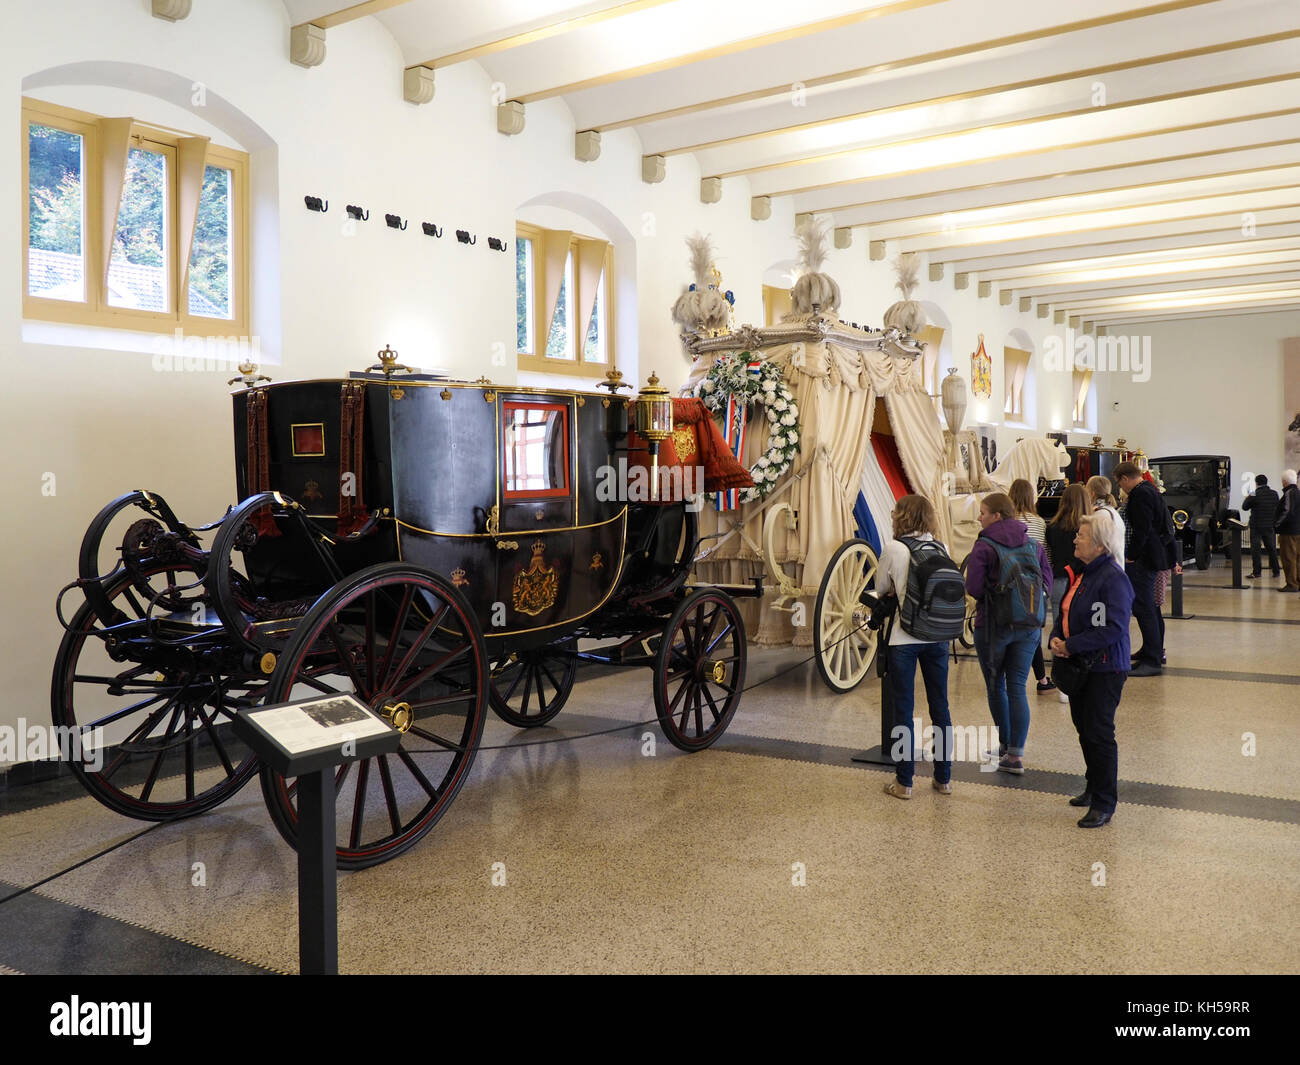 Carriages of the Dutch Royal Family on display in the stables of the het Loo Palace in Apeldoorn, Gelderland, the - Stock Image